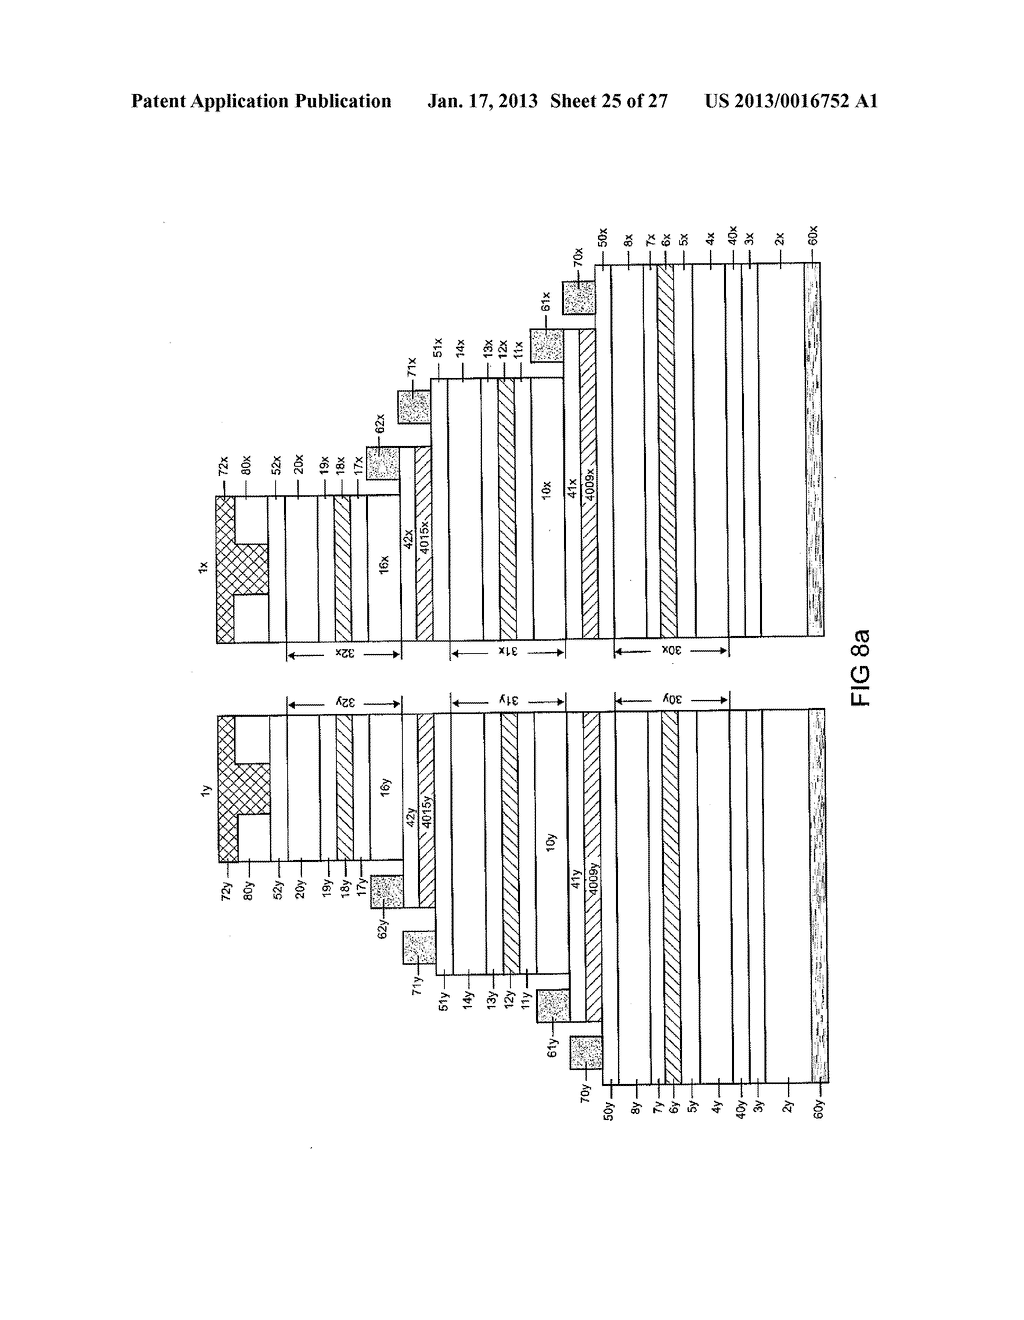 Laser Diode Assembly and Method for Producing a Laser Diode AssemblyAANM Lell; AlfredAACI Maxhutte-HaidhofAACO DEAAGP Lell; Alfred Maxhutte-Haidhof DEAANM Straussburg; MartinAACI DonaustaufAACO DEAAGP Straussburg; Martin Donaustauf DE - diagram, schematic, and image 26